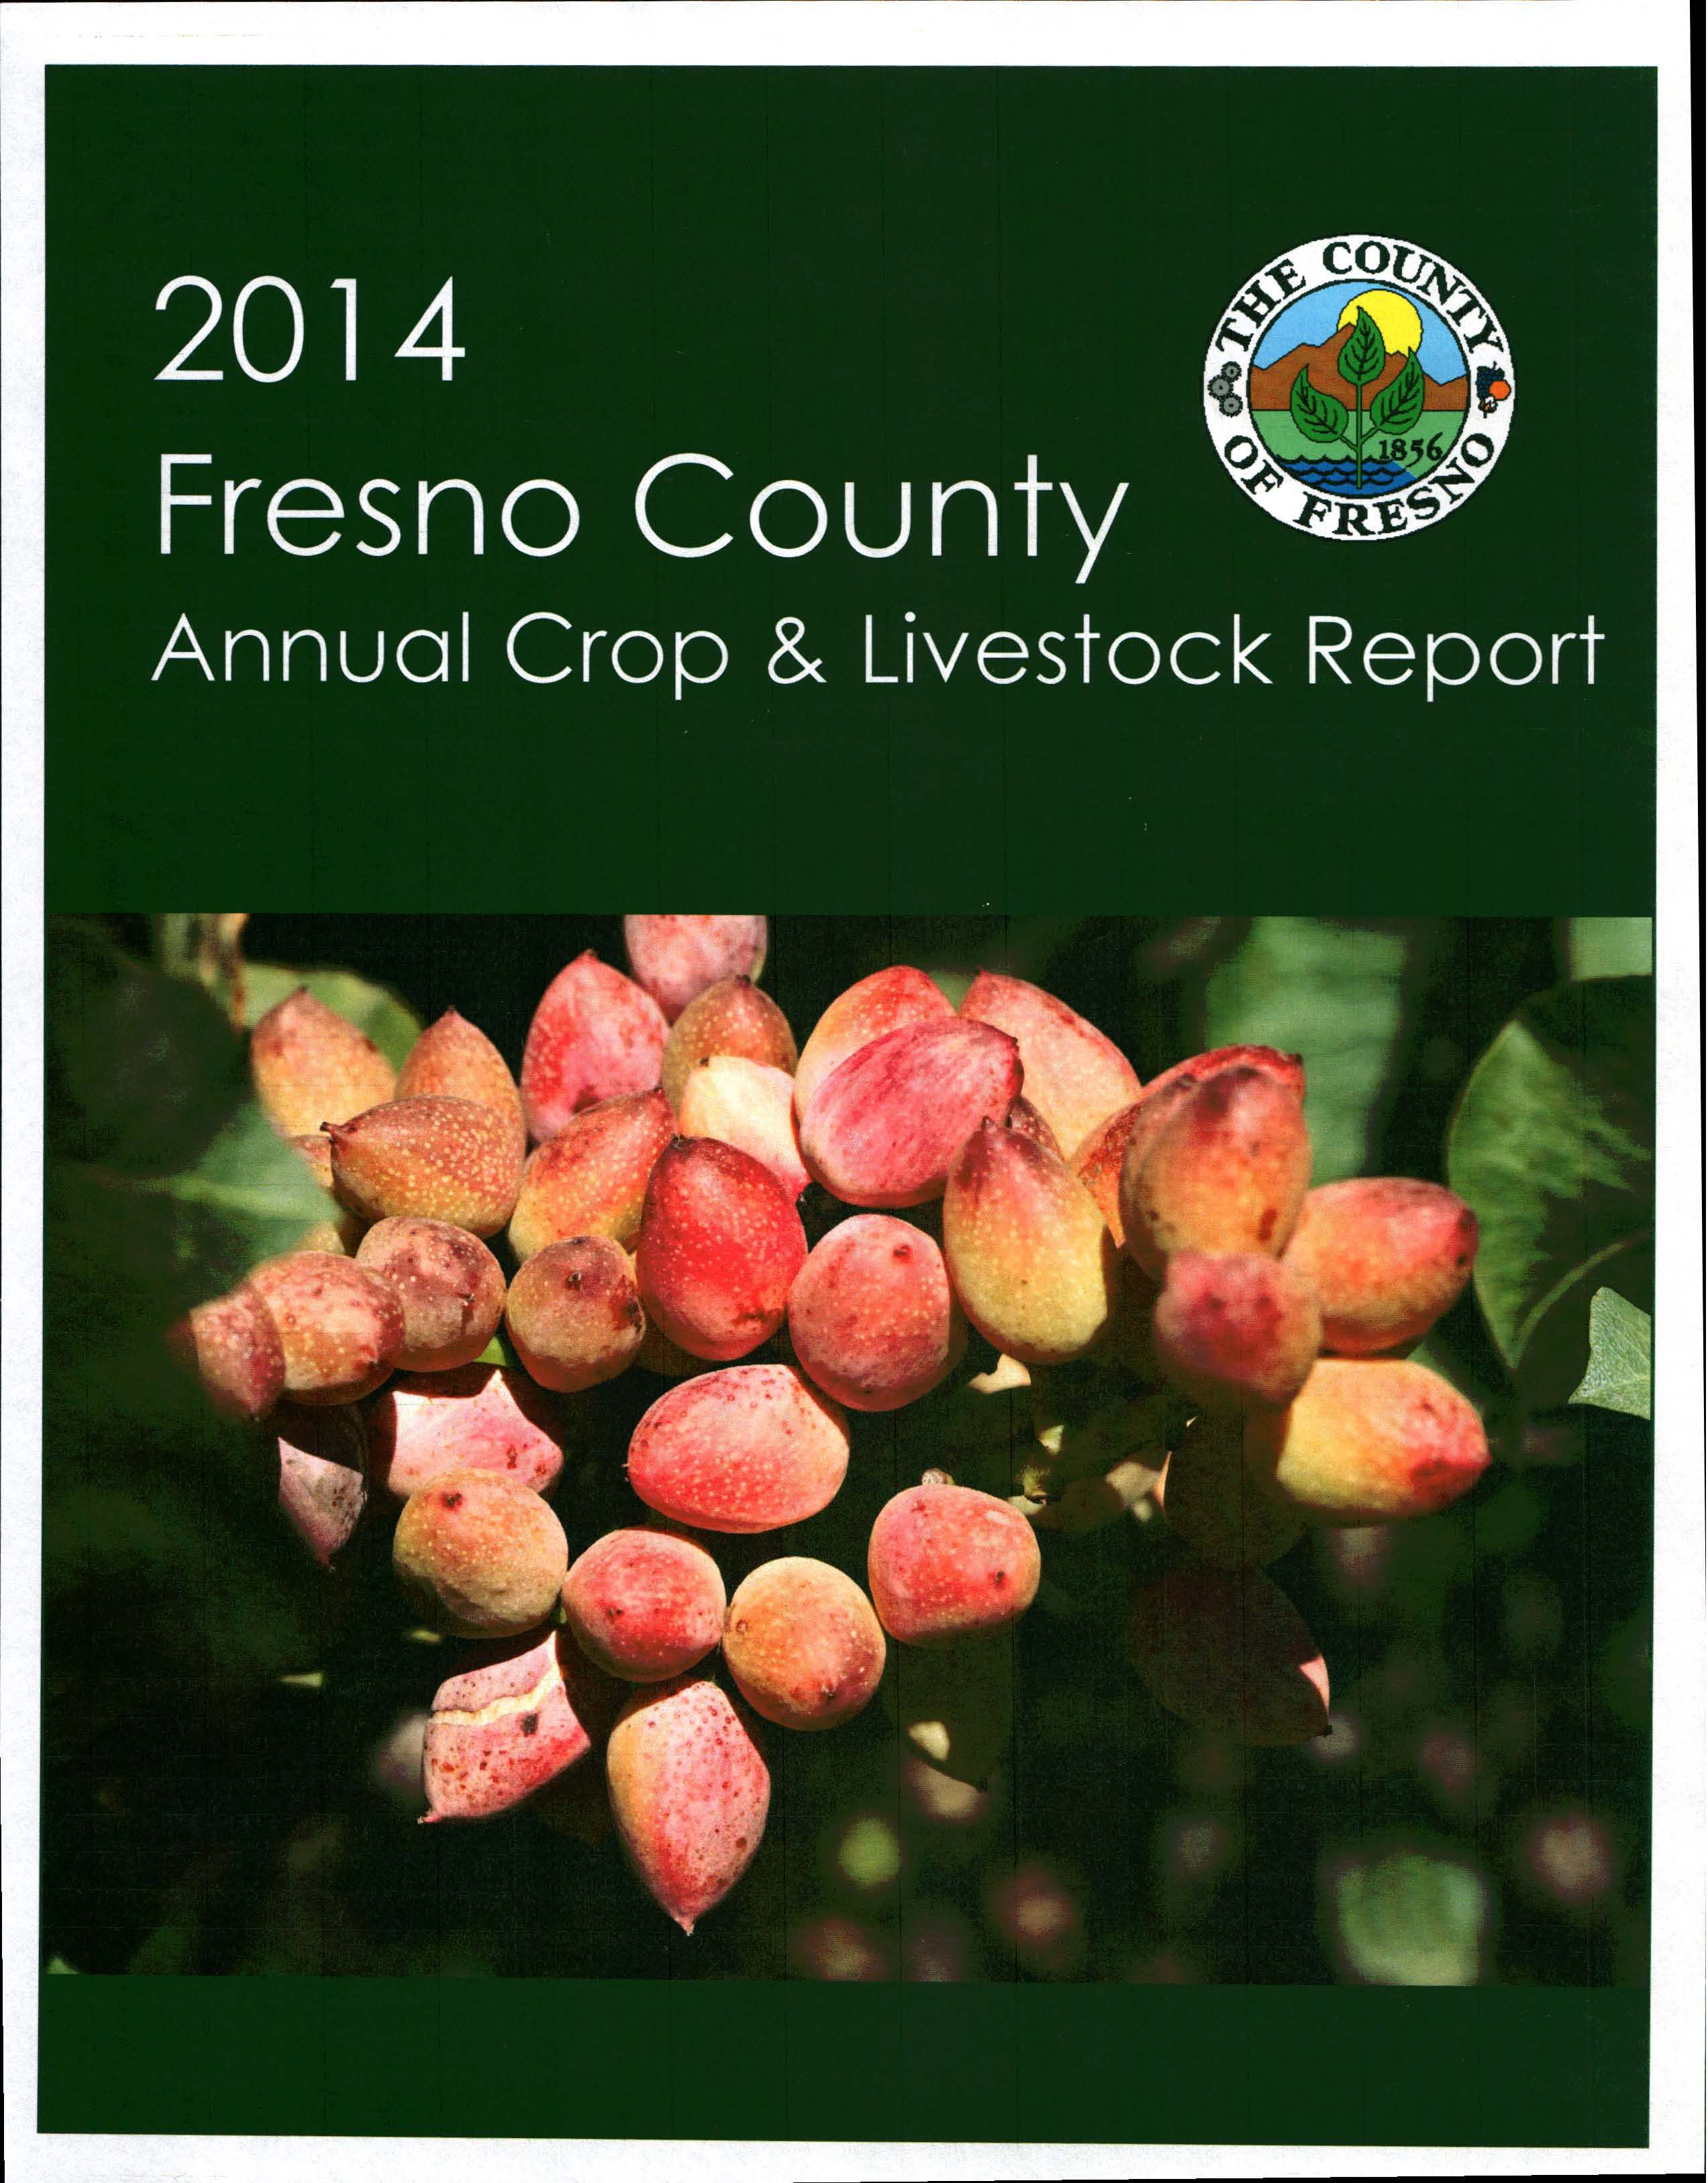 2014 Fresno County Crop Report Sets Record Production